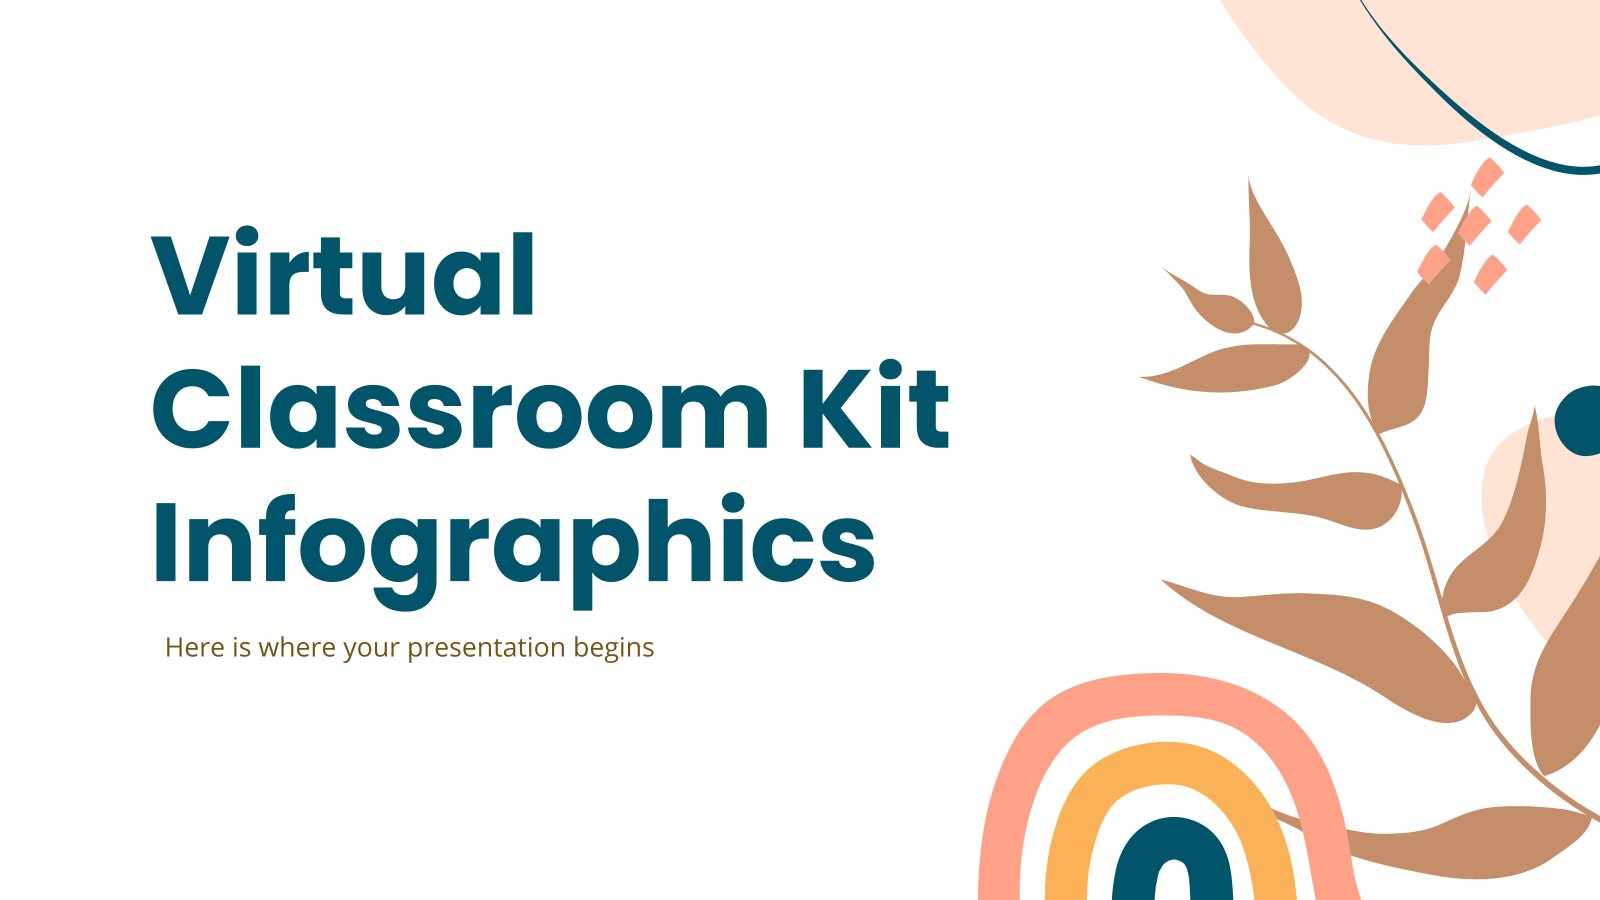 Virtual Classroom Kit Infographics presentation template